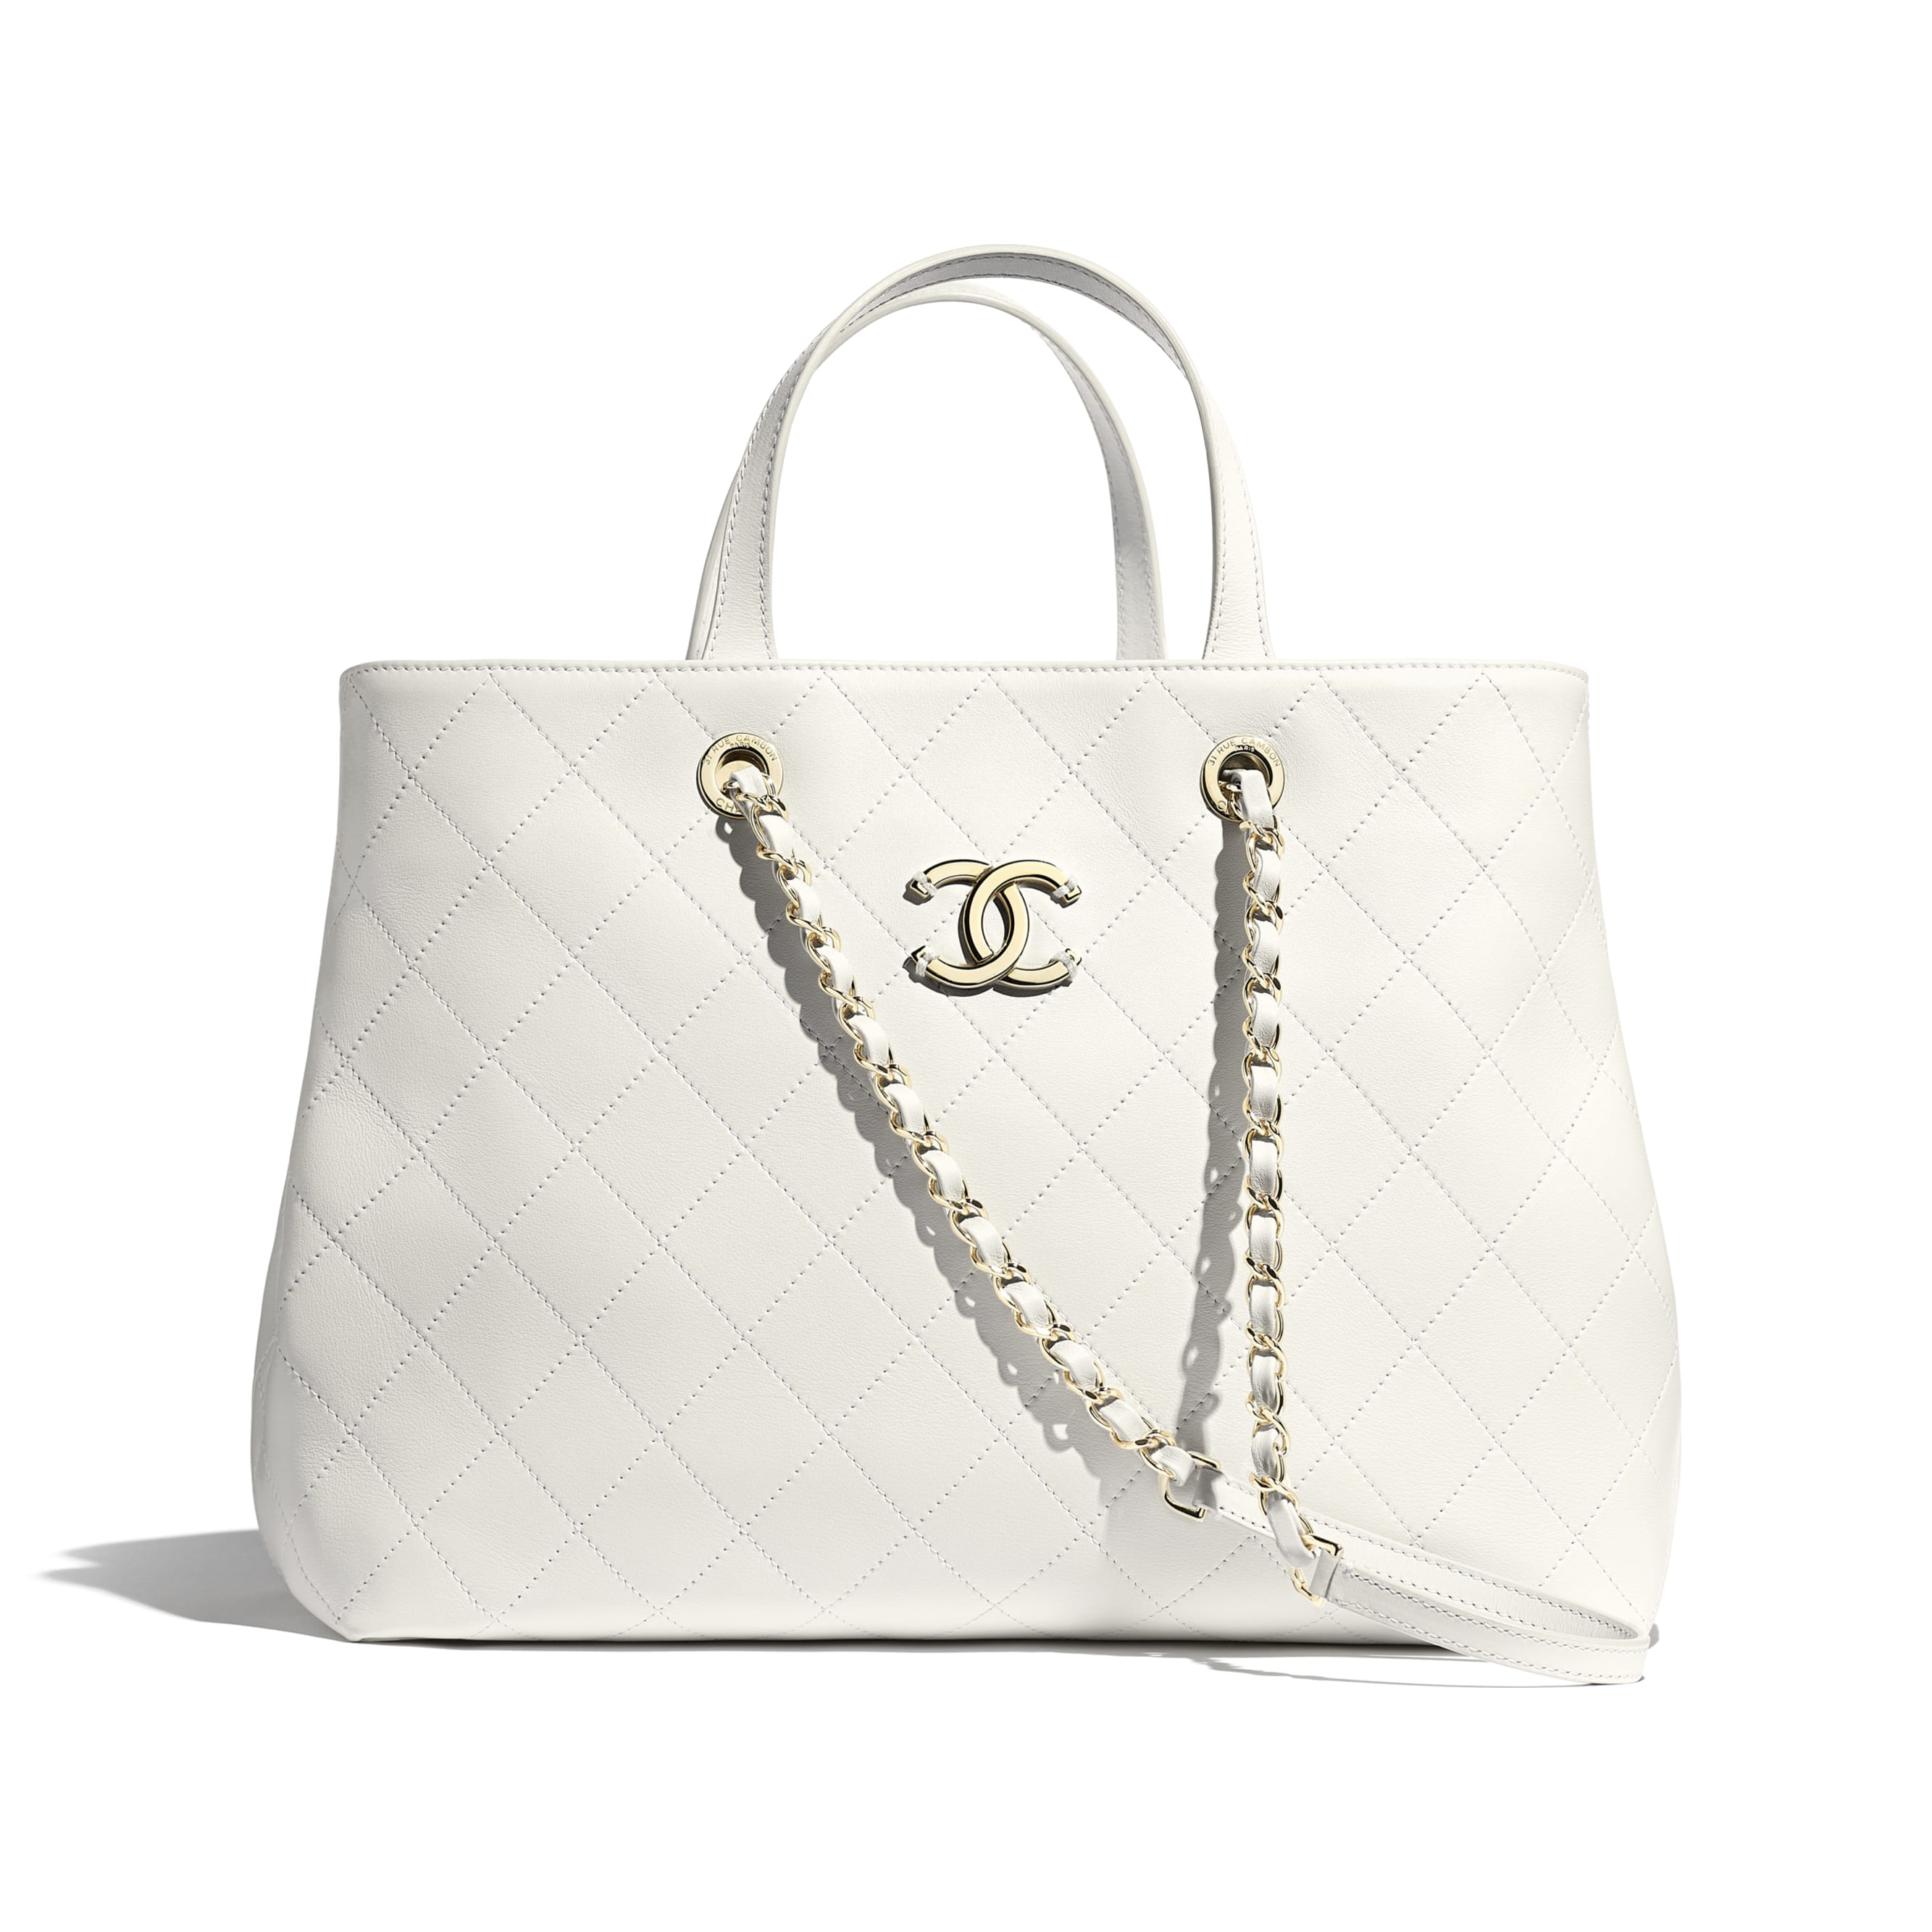 Shopping Bag - White - Calfskin & Gold-Tone Metal - CHANEL - Default view - see standard sized version